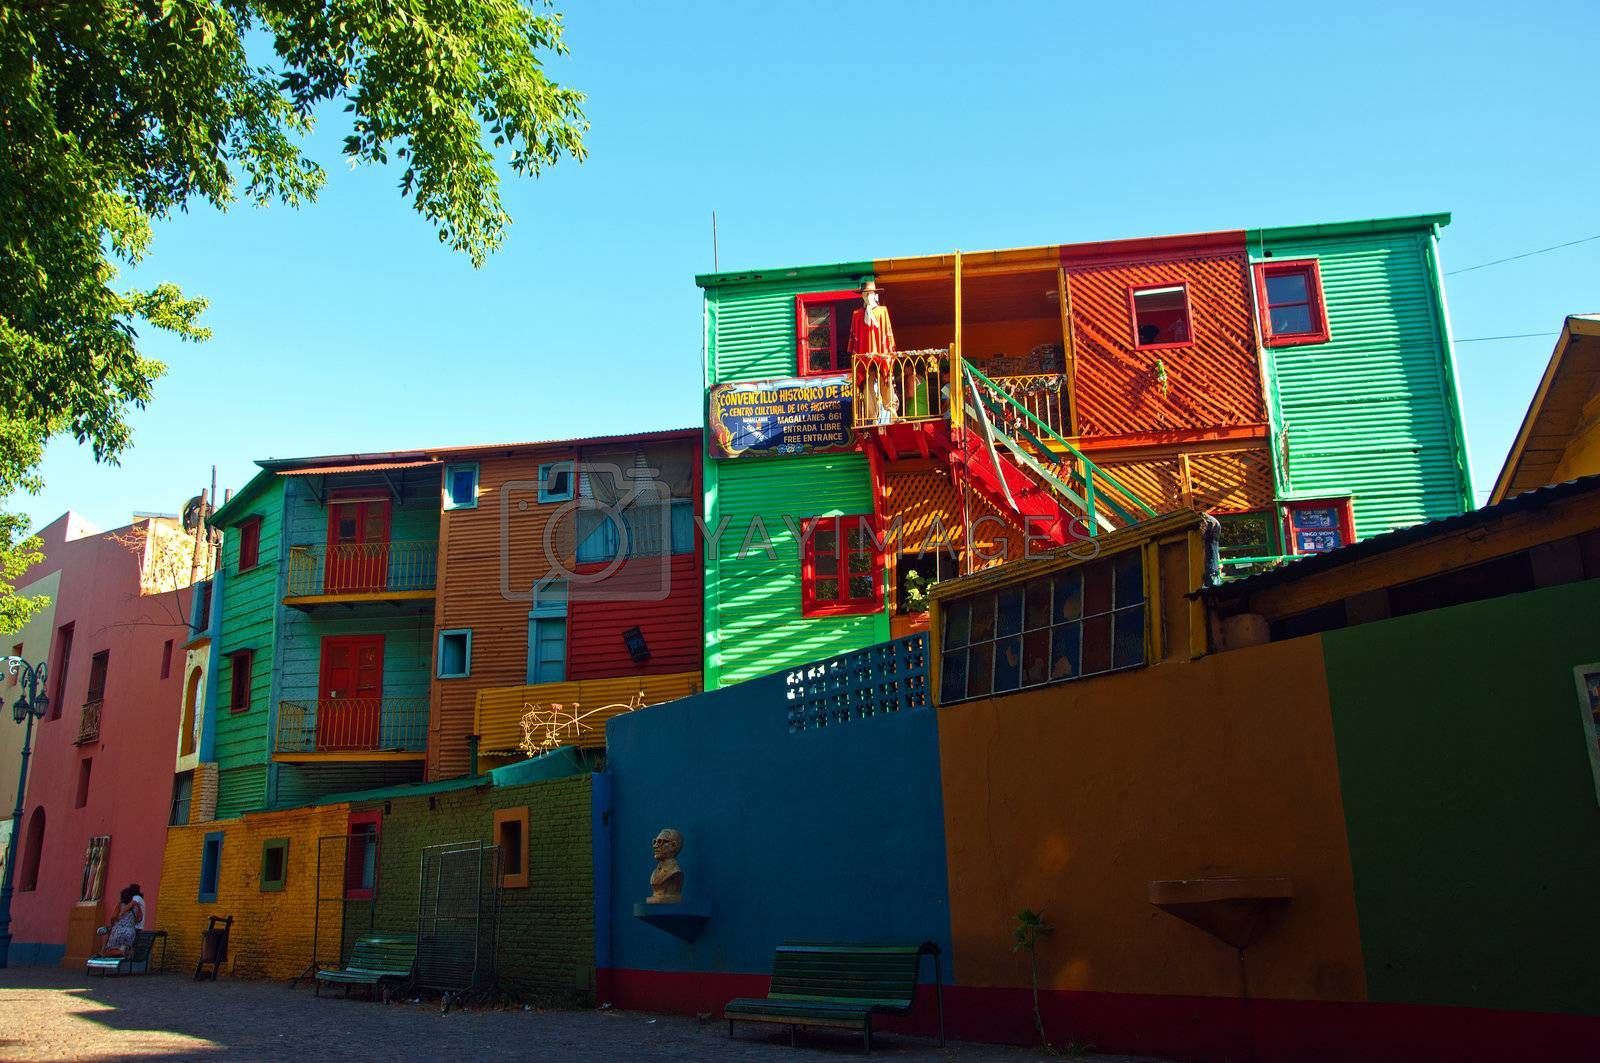 Colors from the La Boca neighborhood of Buenos Aires, Argentina.